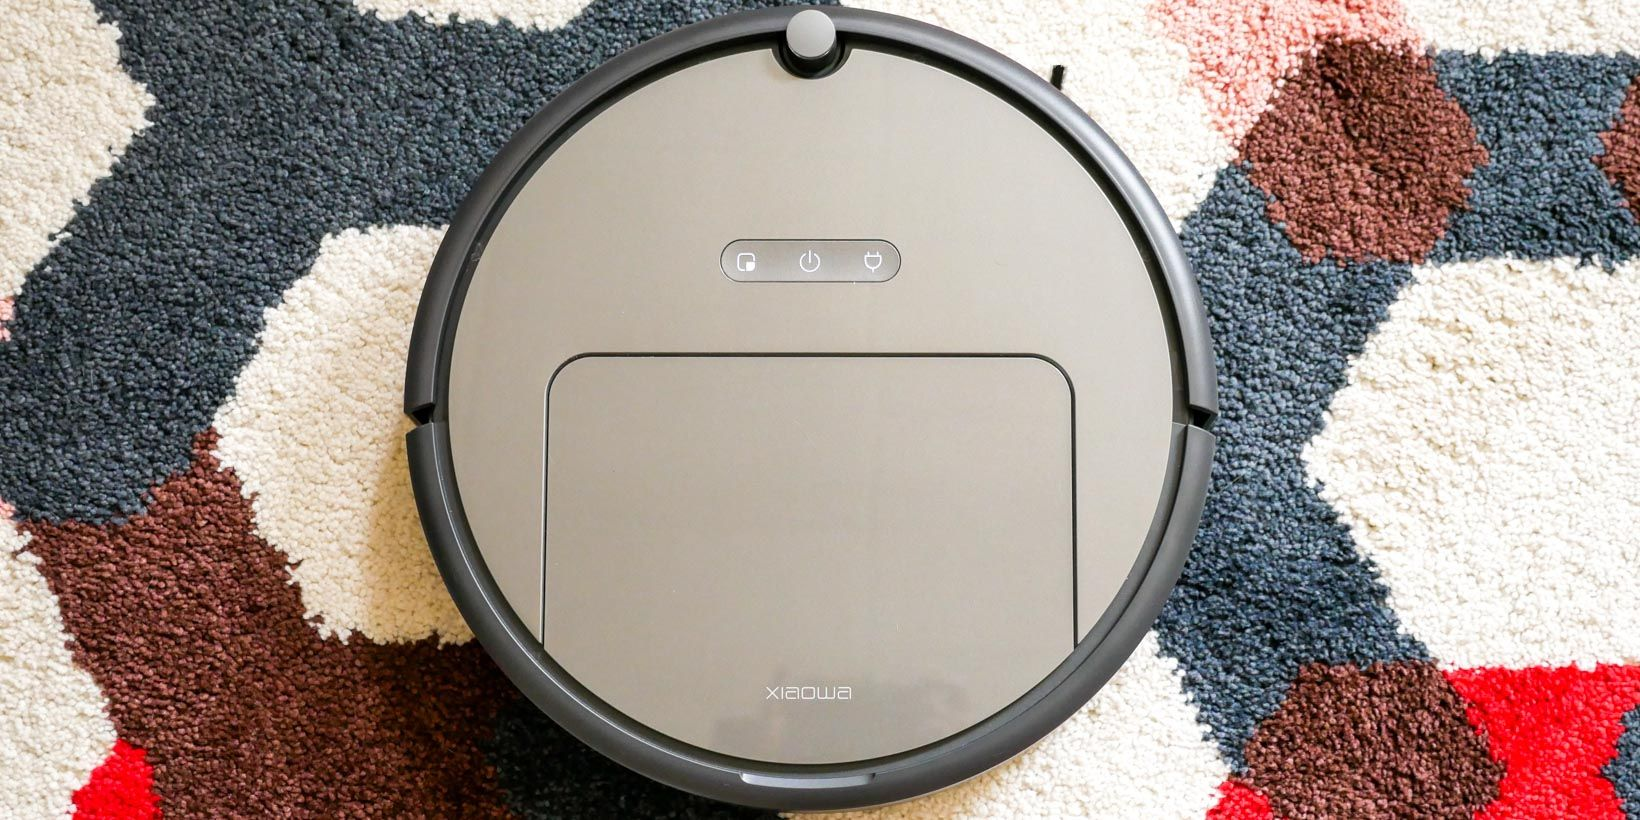 MakeUseOf | Most Powerful Robot Vacuum Yet, But Is It Good